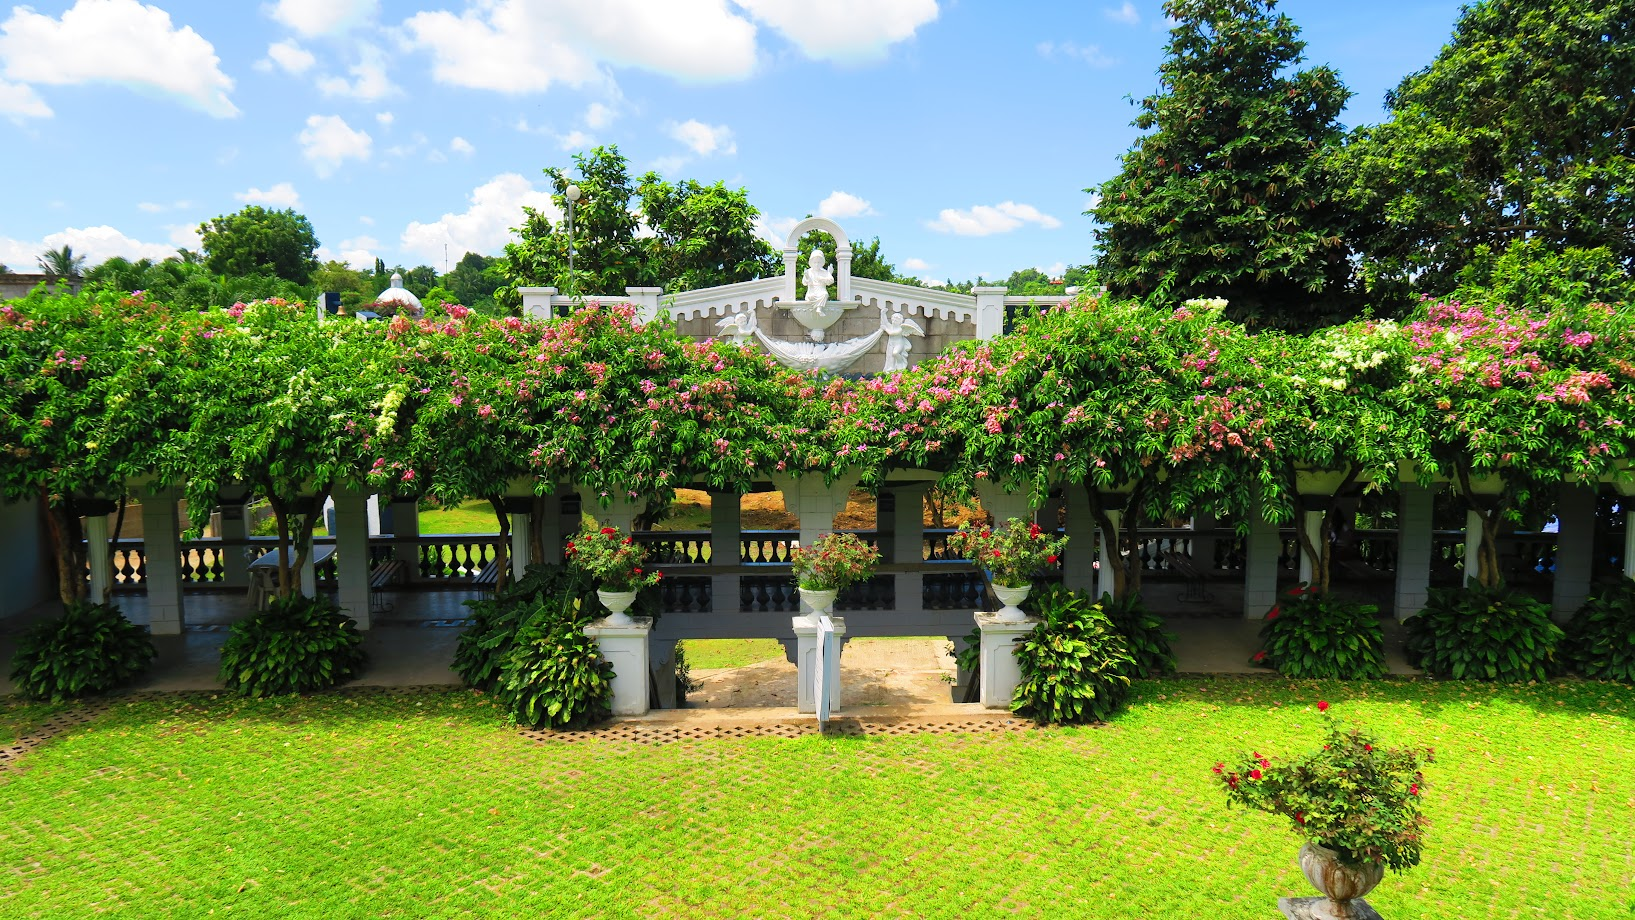 Affordable Long Weekend Destinations Near Manila - Marian Orchard Batangas